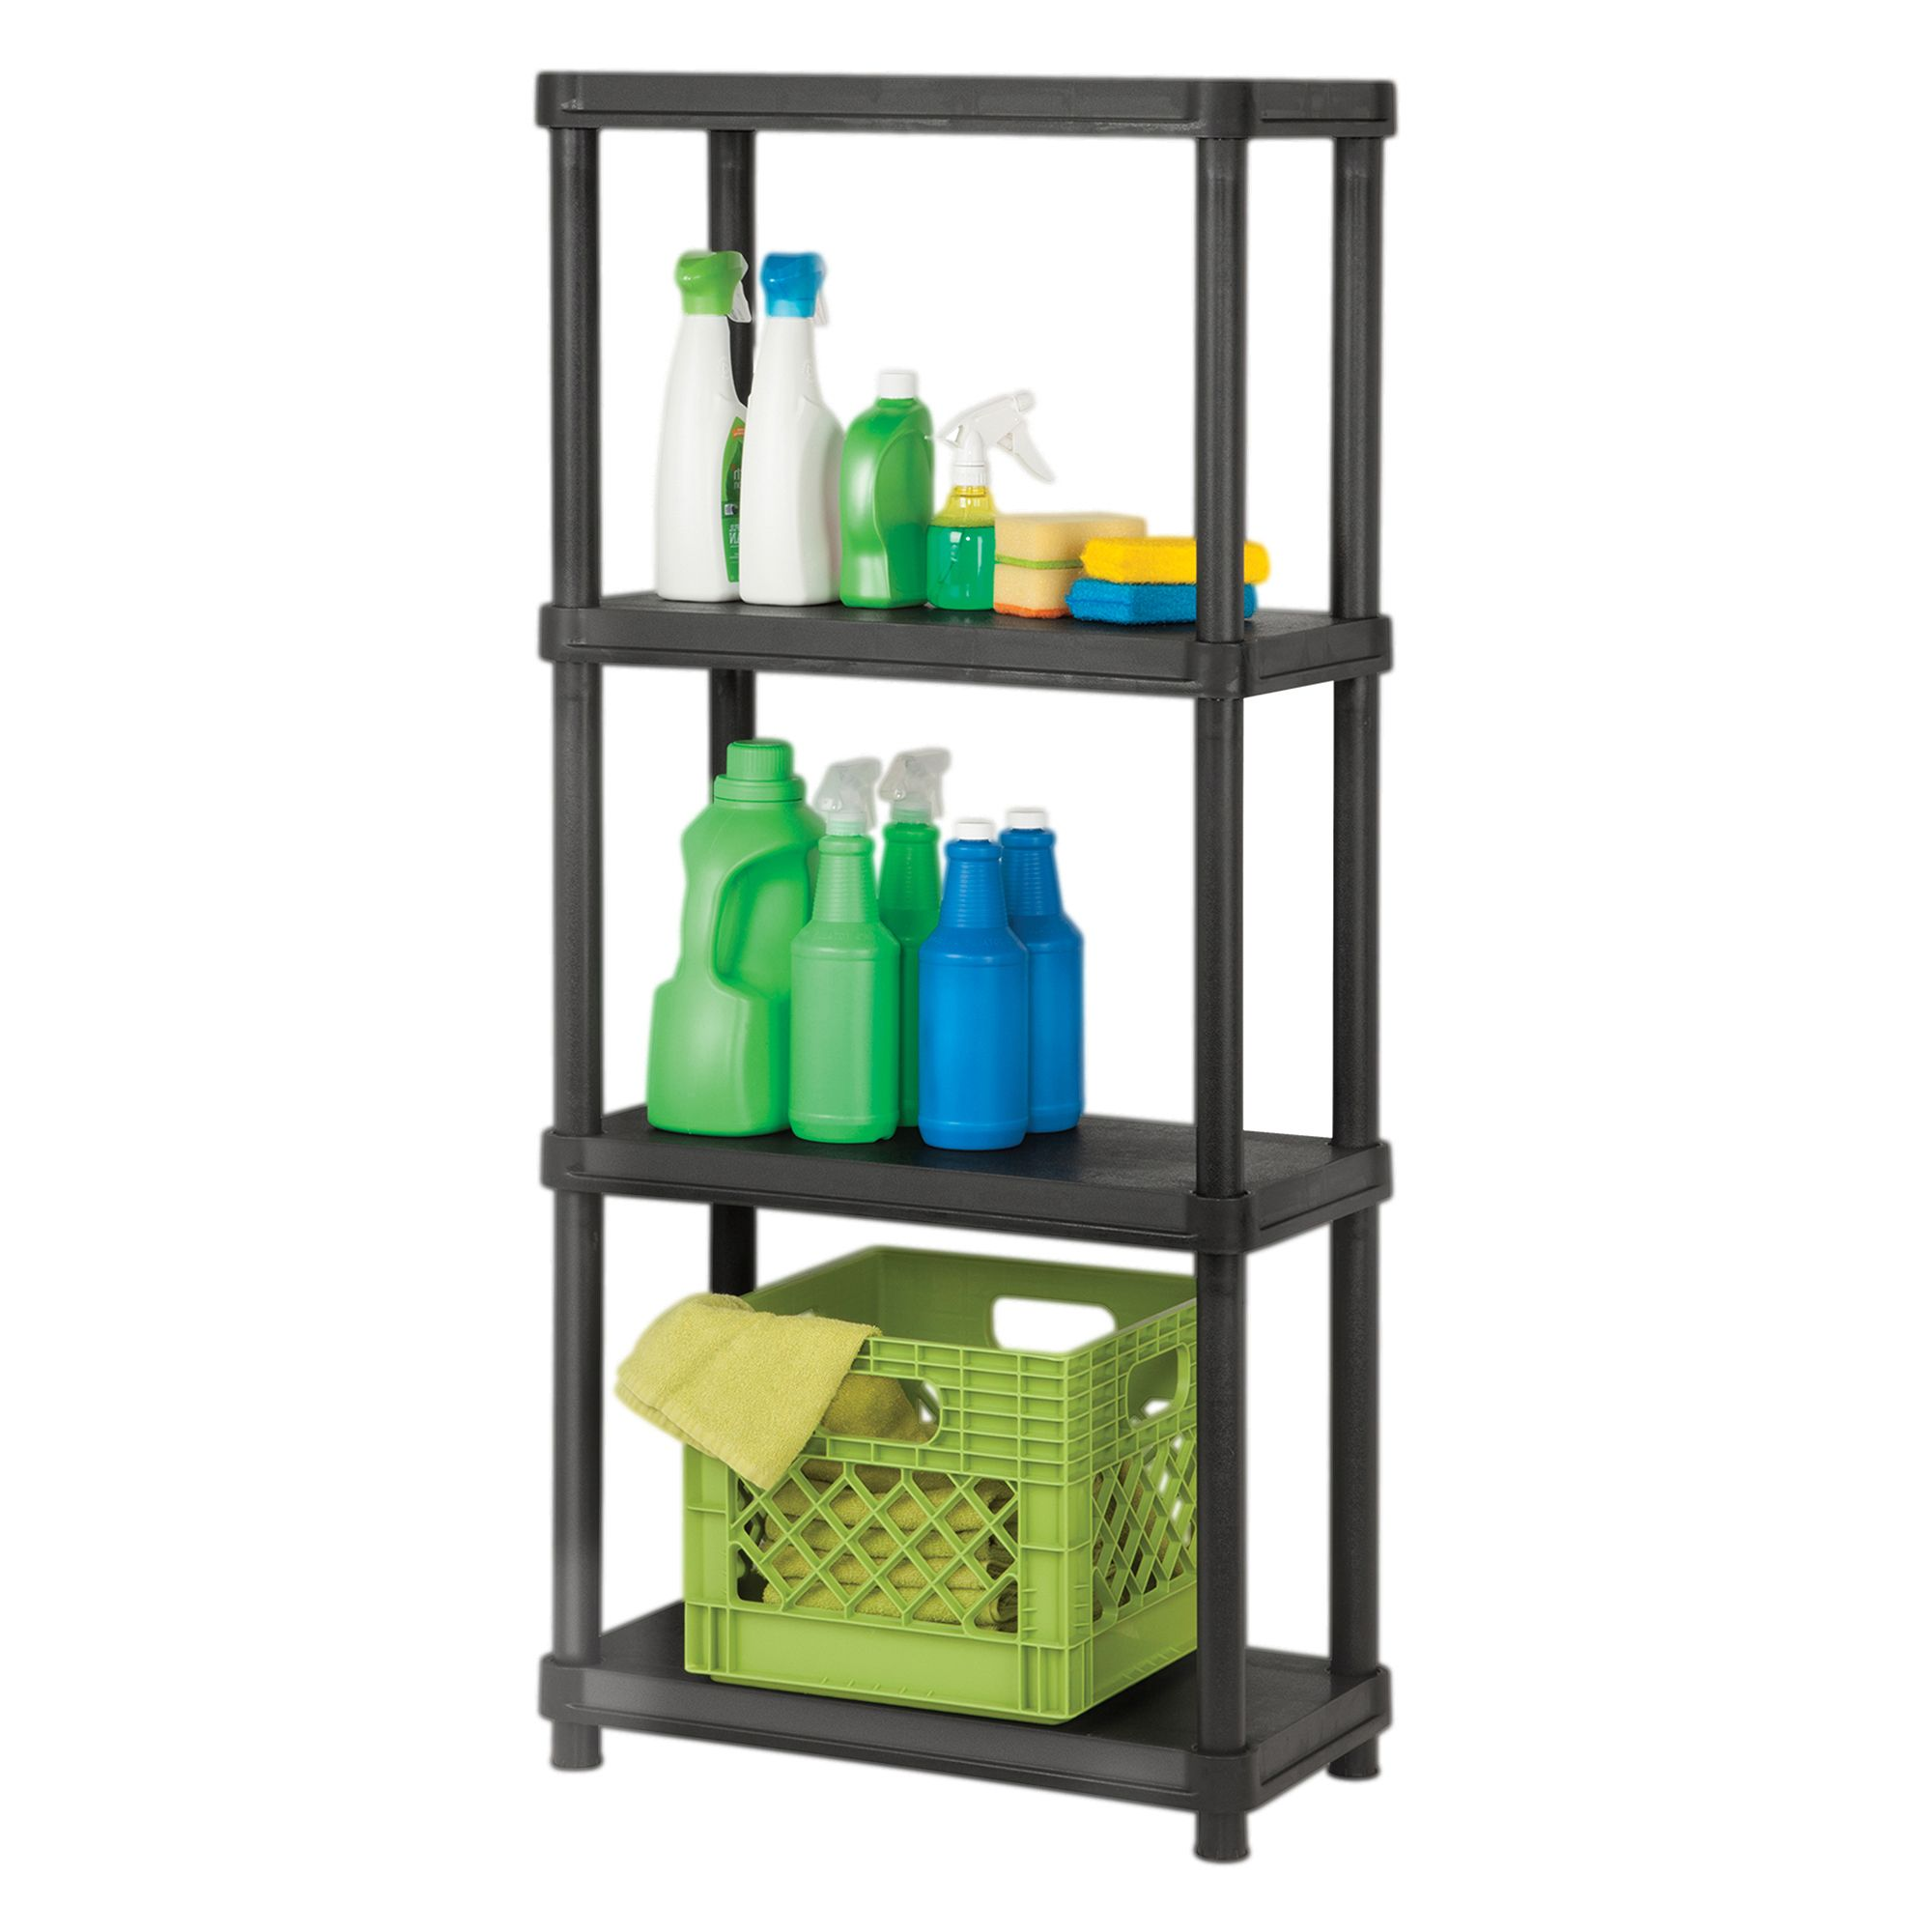 Organize It 4 Tier 12 X 24 Resin Shelving System